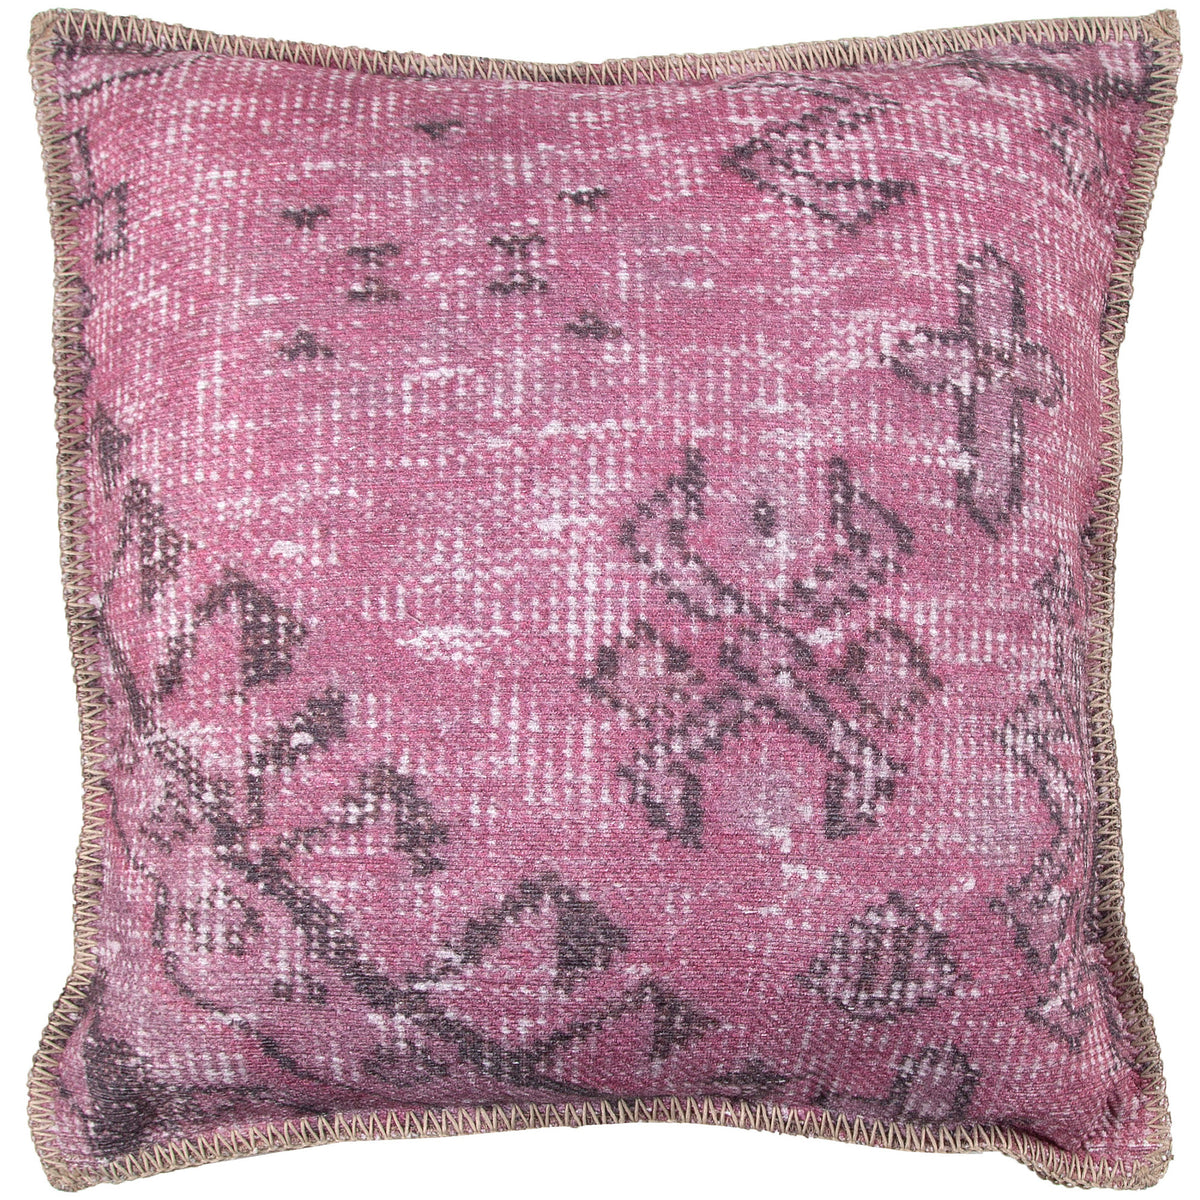 CORSO pillow by Renwil